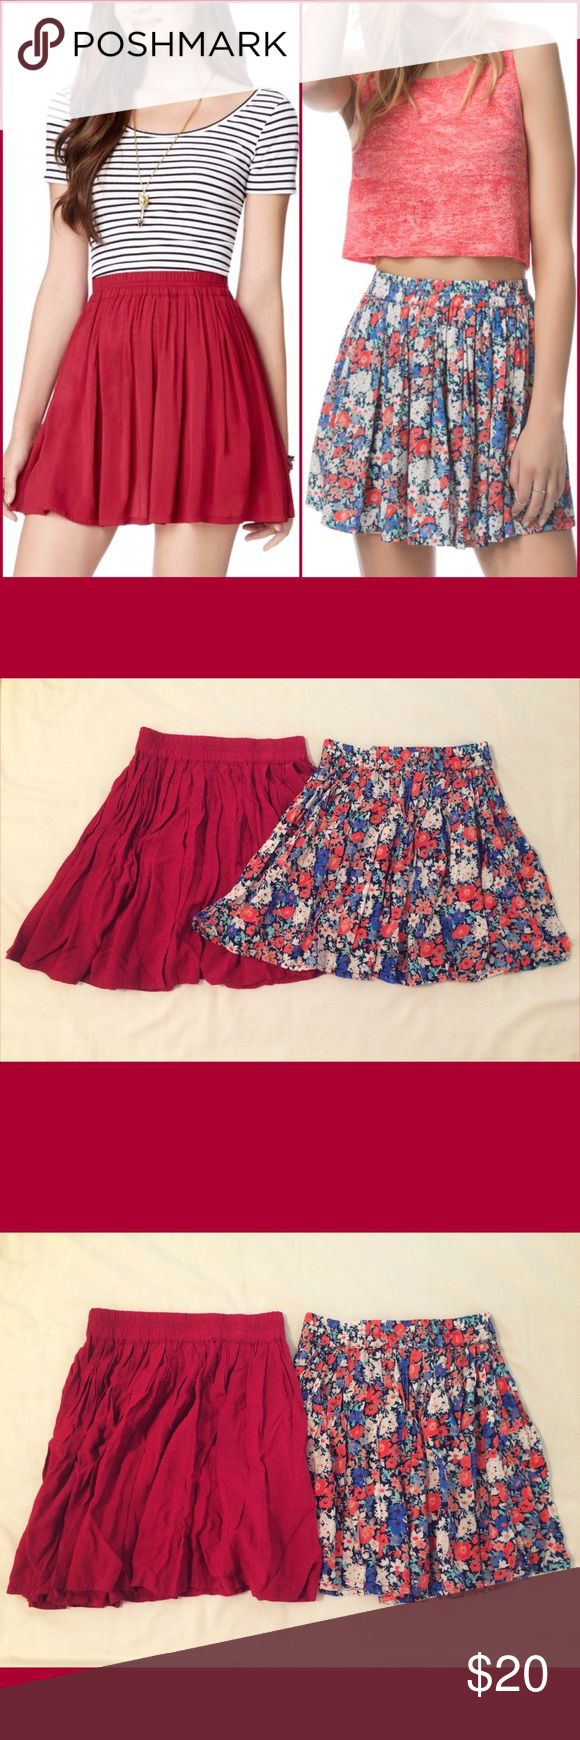 Two Aeropostale Mini Skirts Two Aeropostale Mini Skirts One Lorimer NYC solid dark red skirt One floral with orange, blue, and white colors Both are size extra small and 100% rayon  Perfect for spring and summer! Aeropostale Skirts Mini